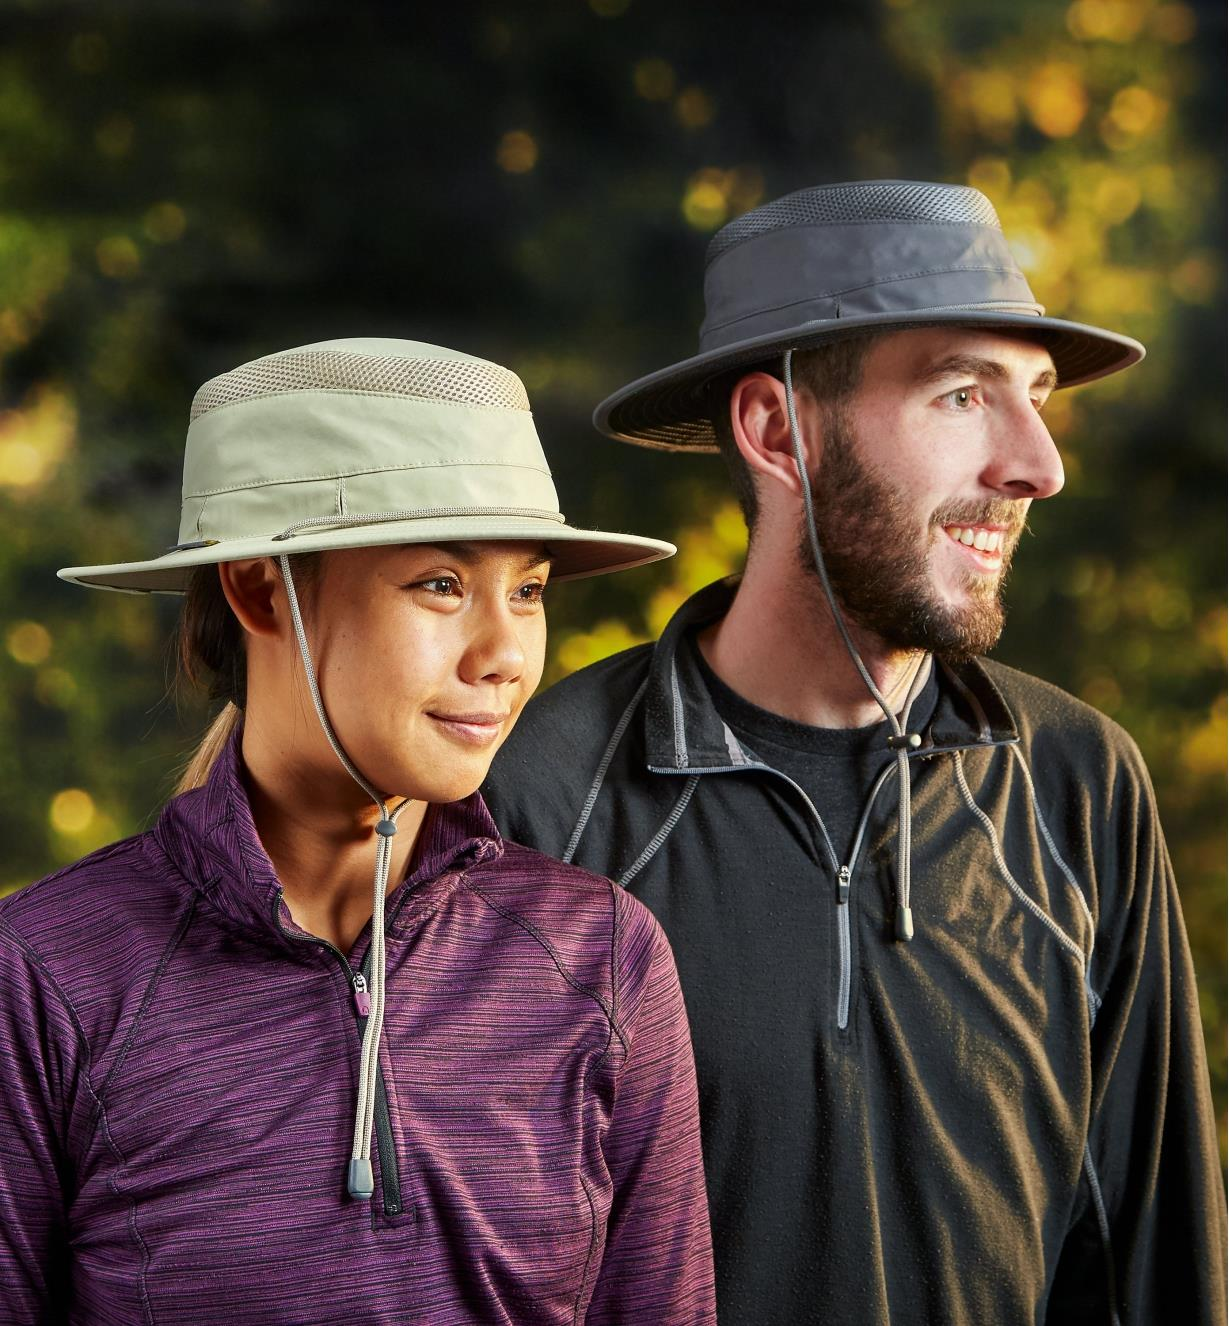 A man and a woman each wearing a classic travel hat